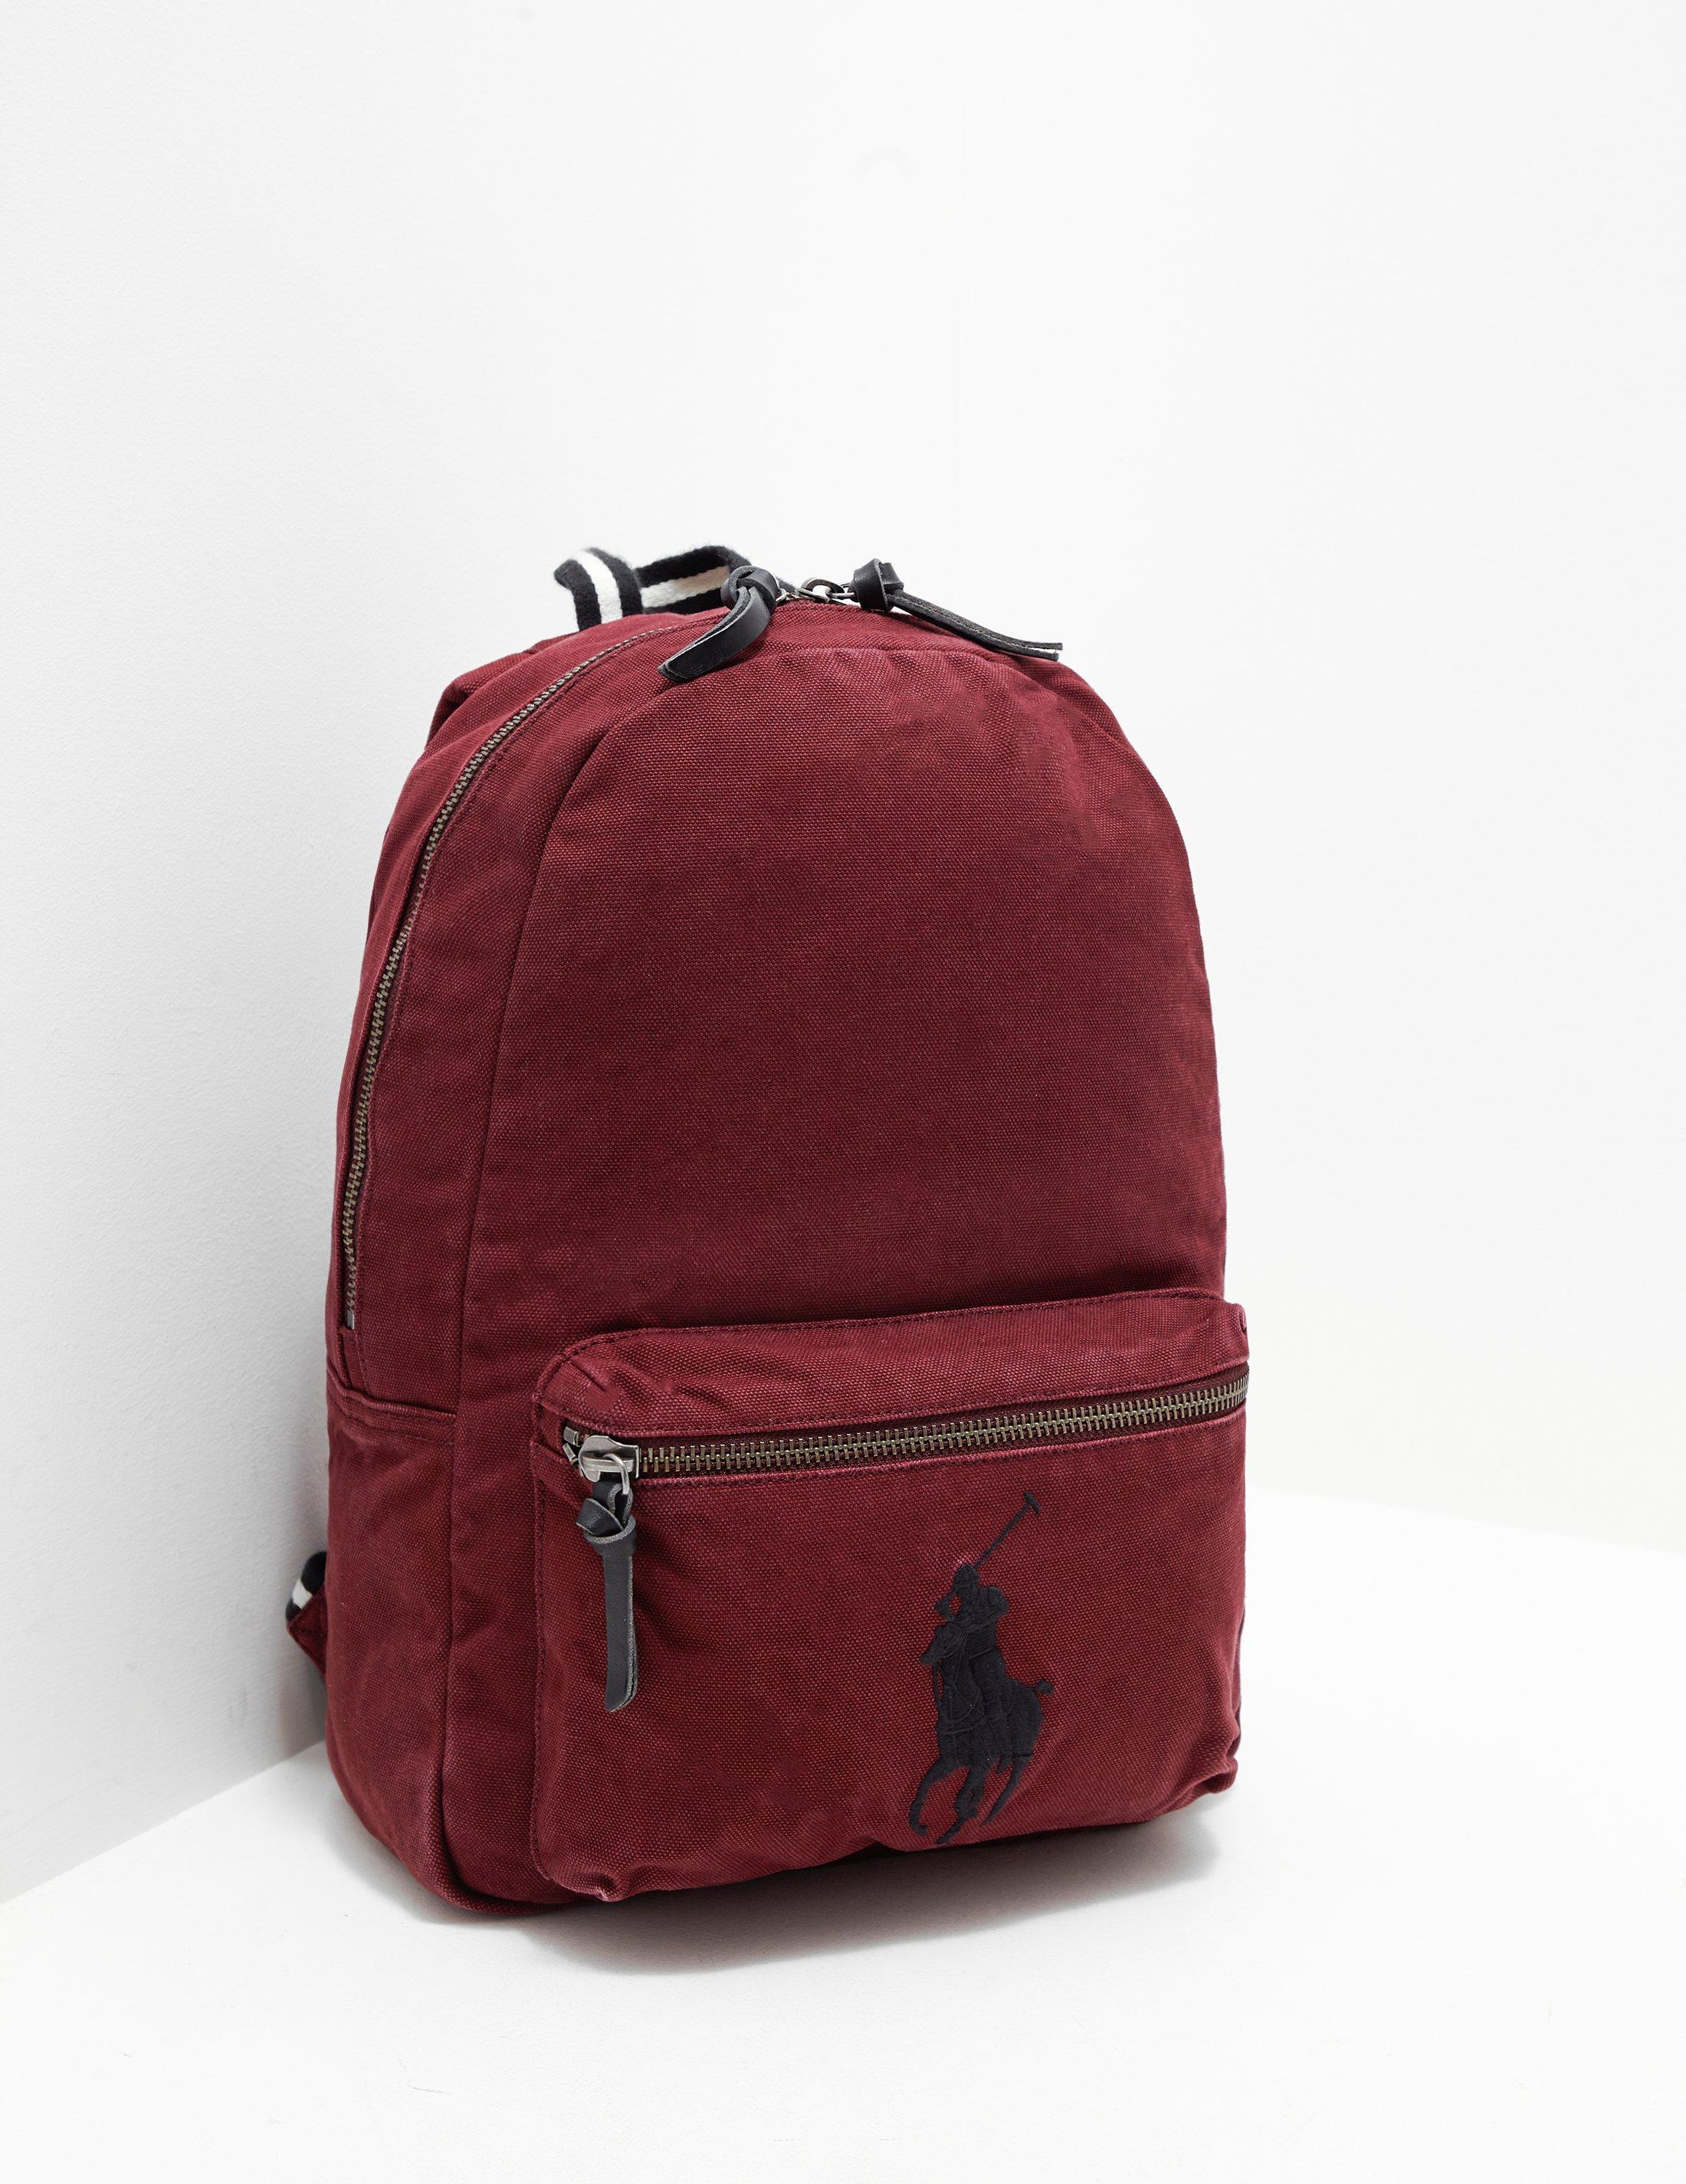 Polo Ralph Lauren Logo Embroidered Canvas Backpack in Red for Men - Lyst 5e317a3379fb7